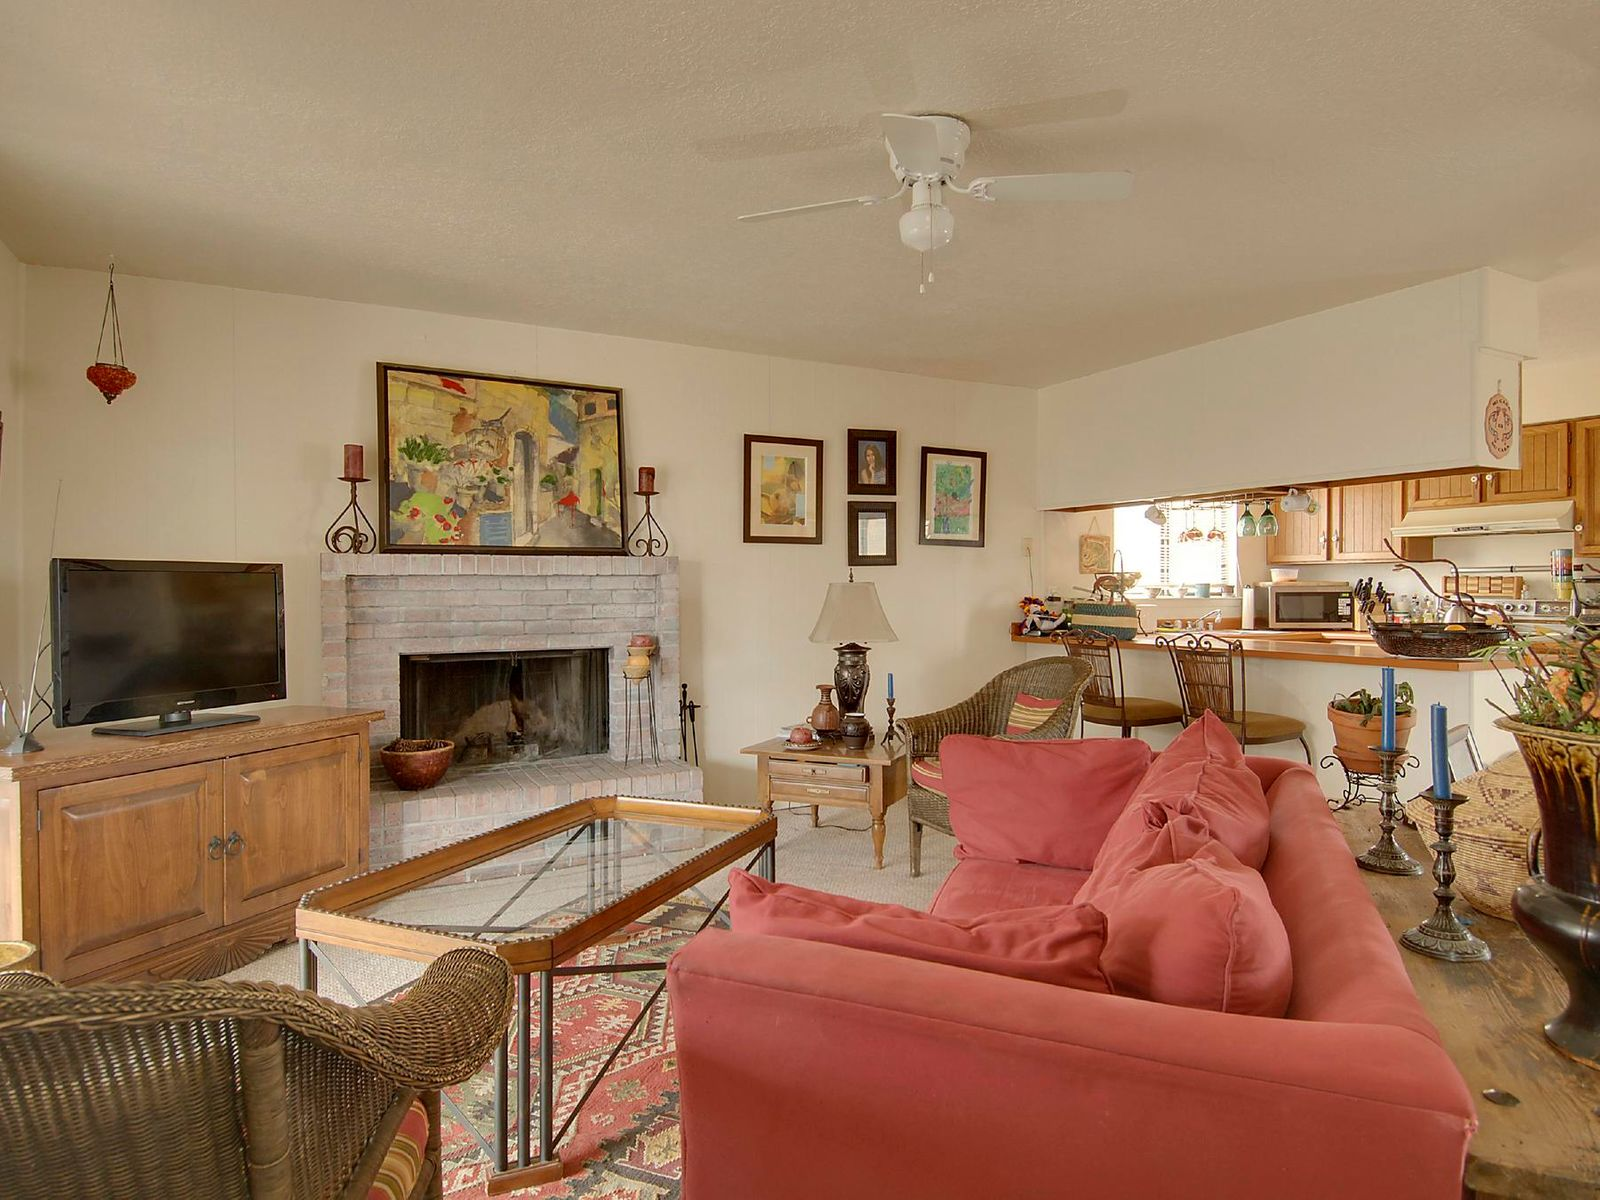 2541 Camino Estribo, Santa Fe NM Single Family Home - Santa Fe Real Estate